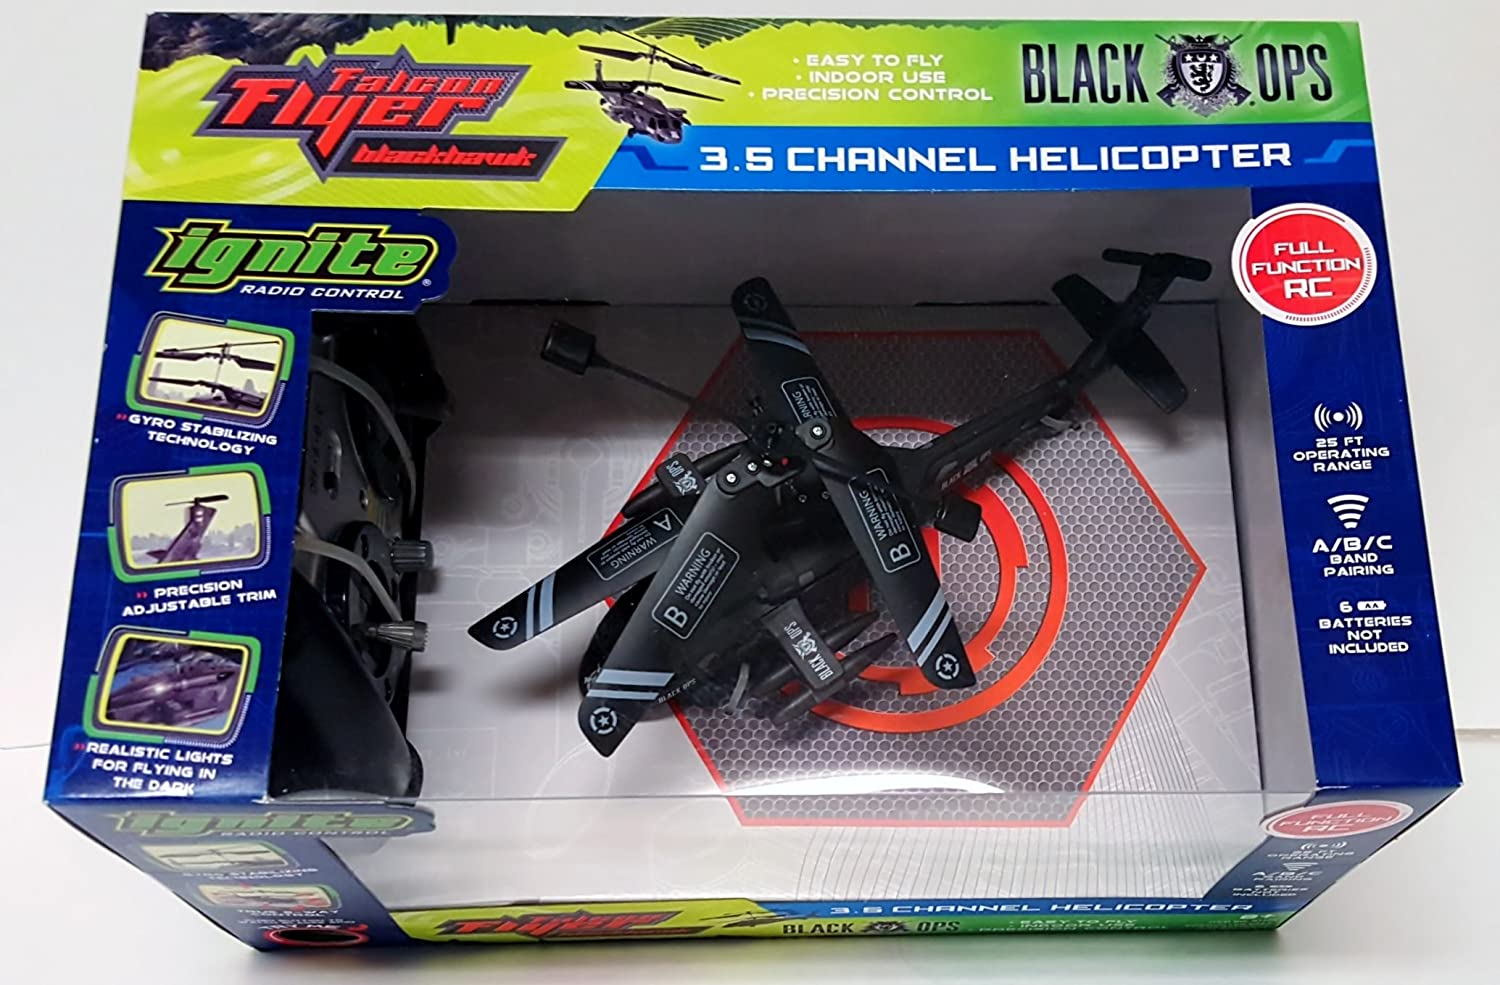 Ignite Falcon Flyer Blackhawk Radio Control 35 Channel And Are More Functional Than A Basic 4 Or 5 Rc Transmitter Helicopter R C Toys Games